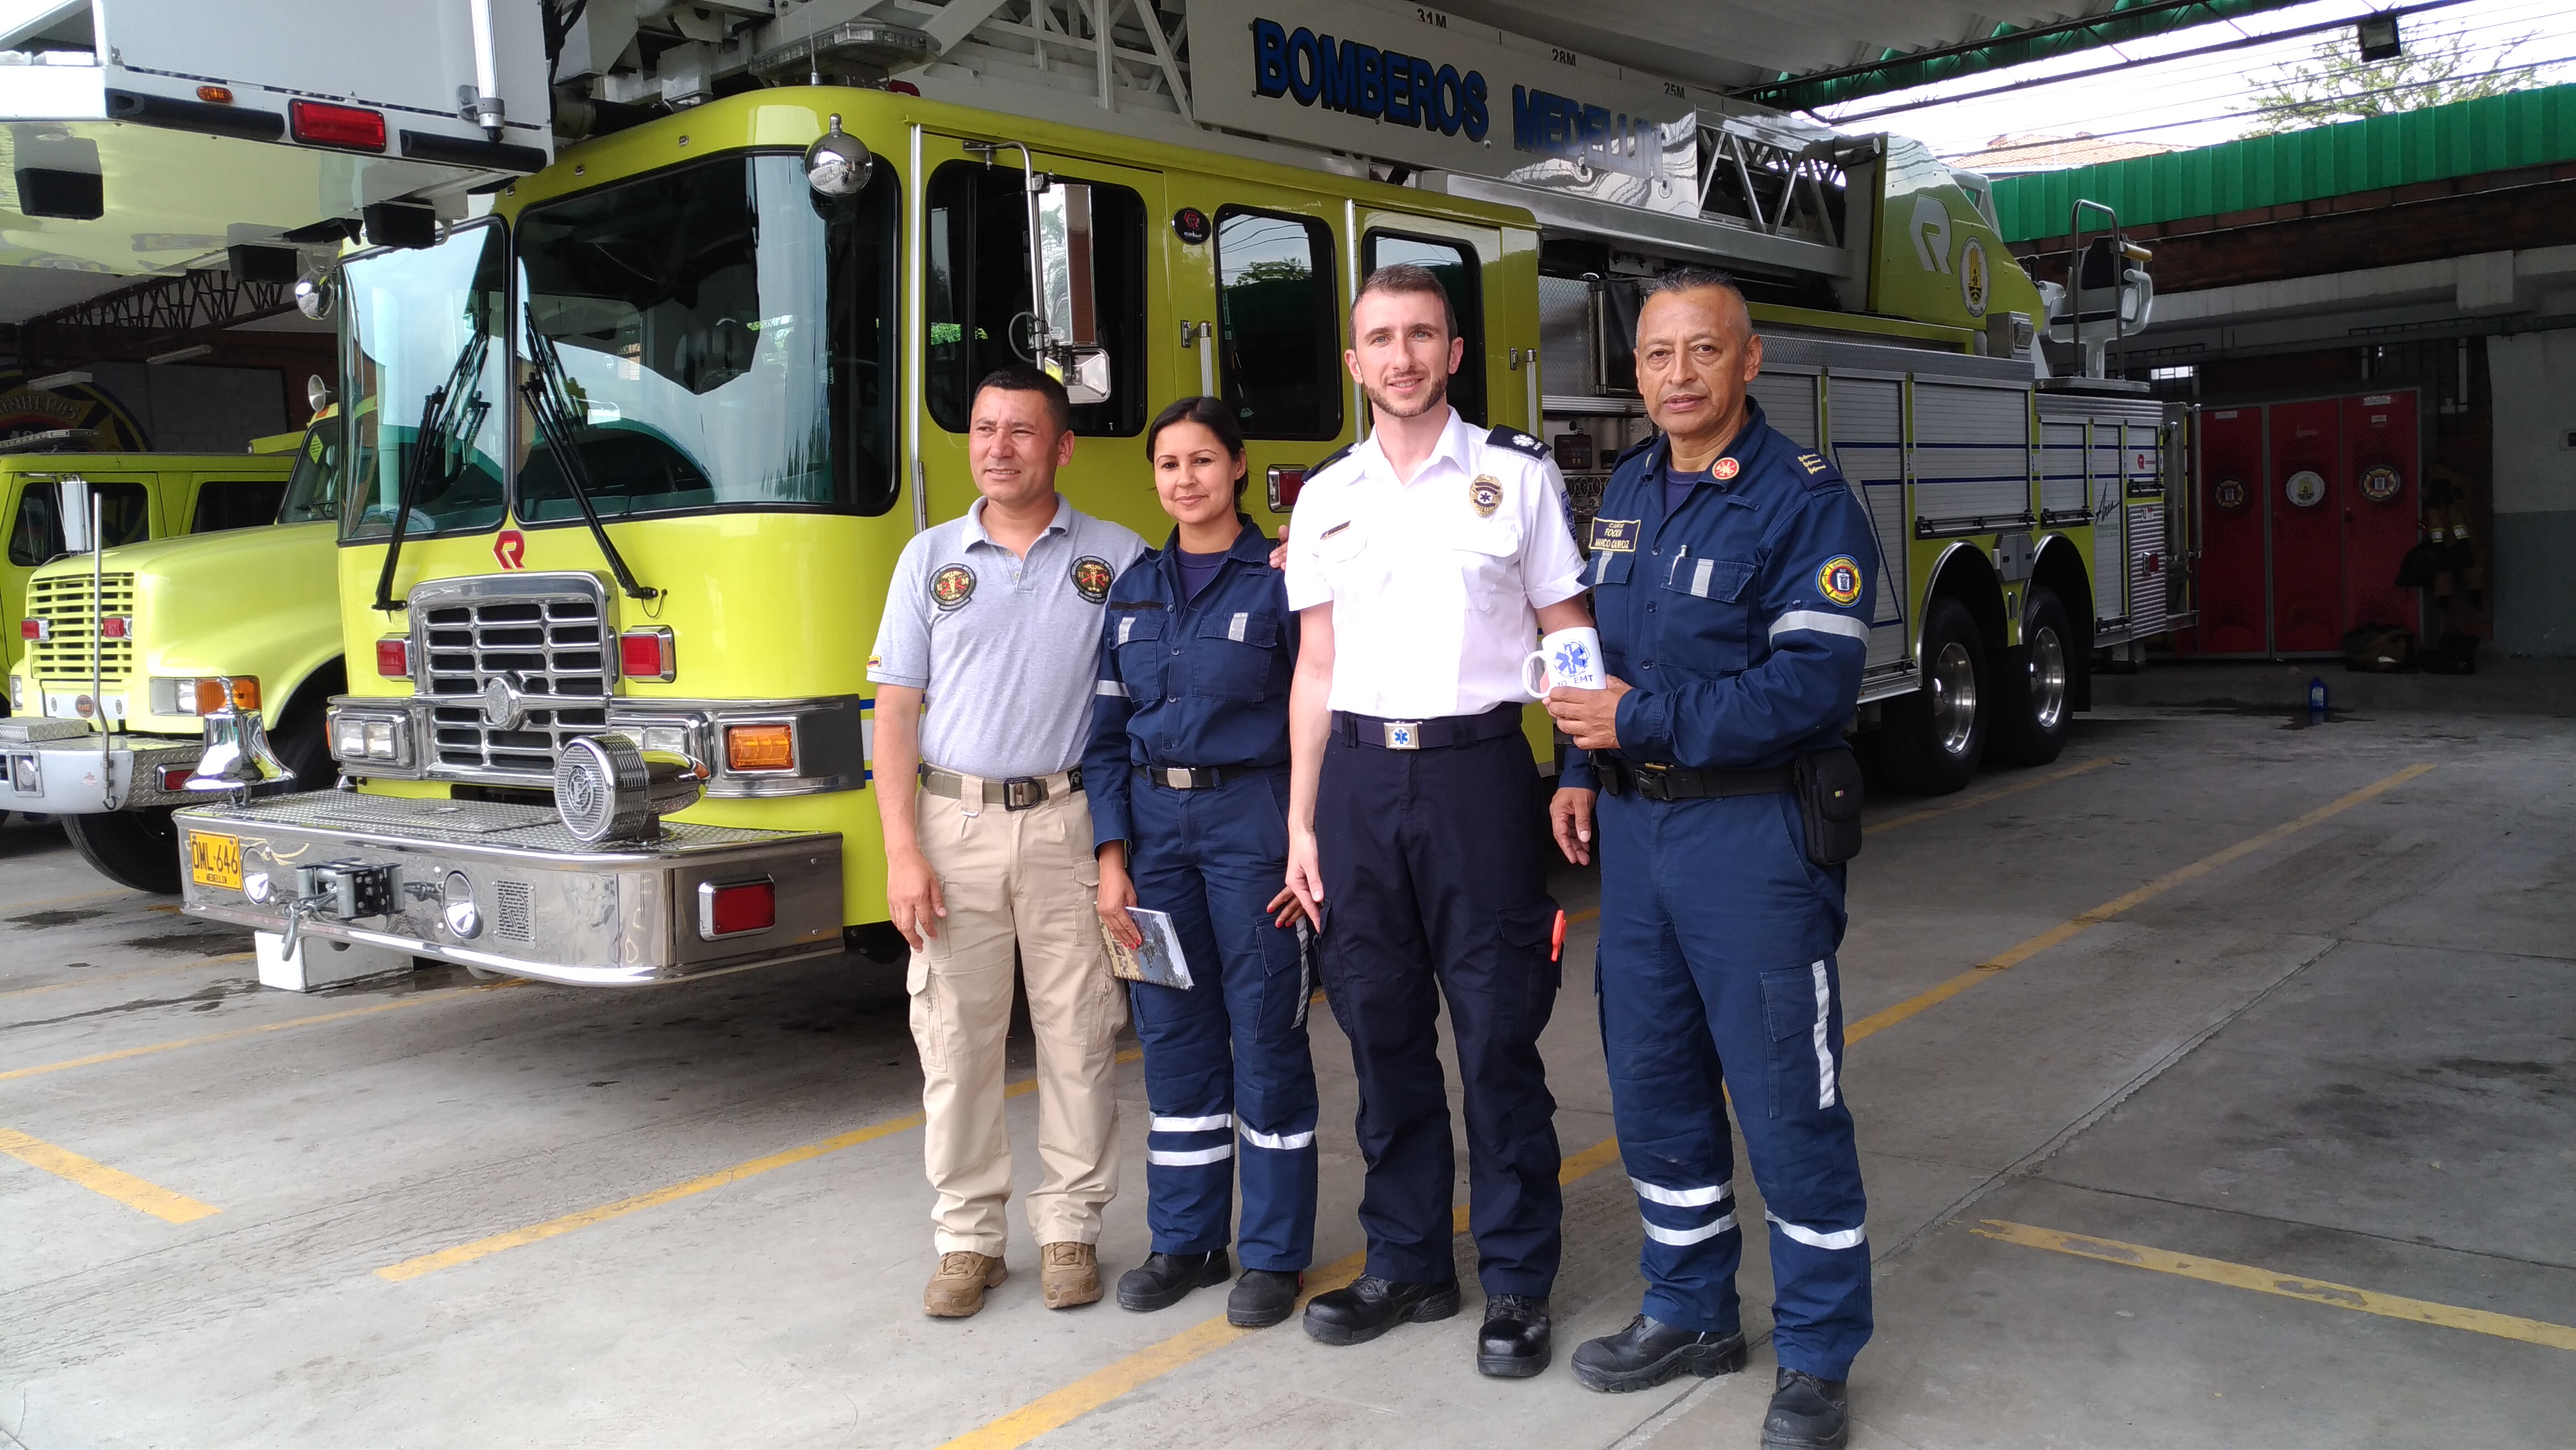 Medellin Fire Dept. (COLOMBIA)